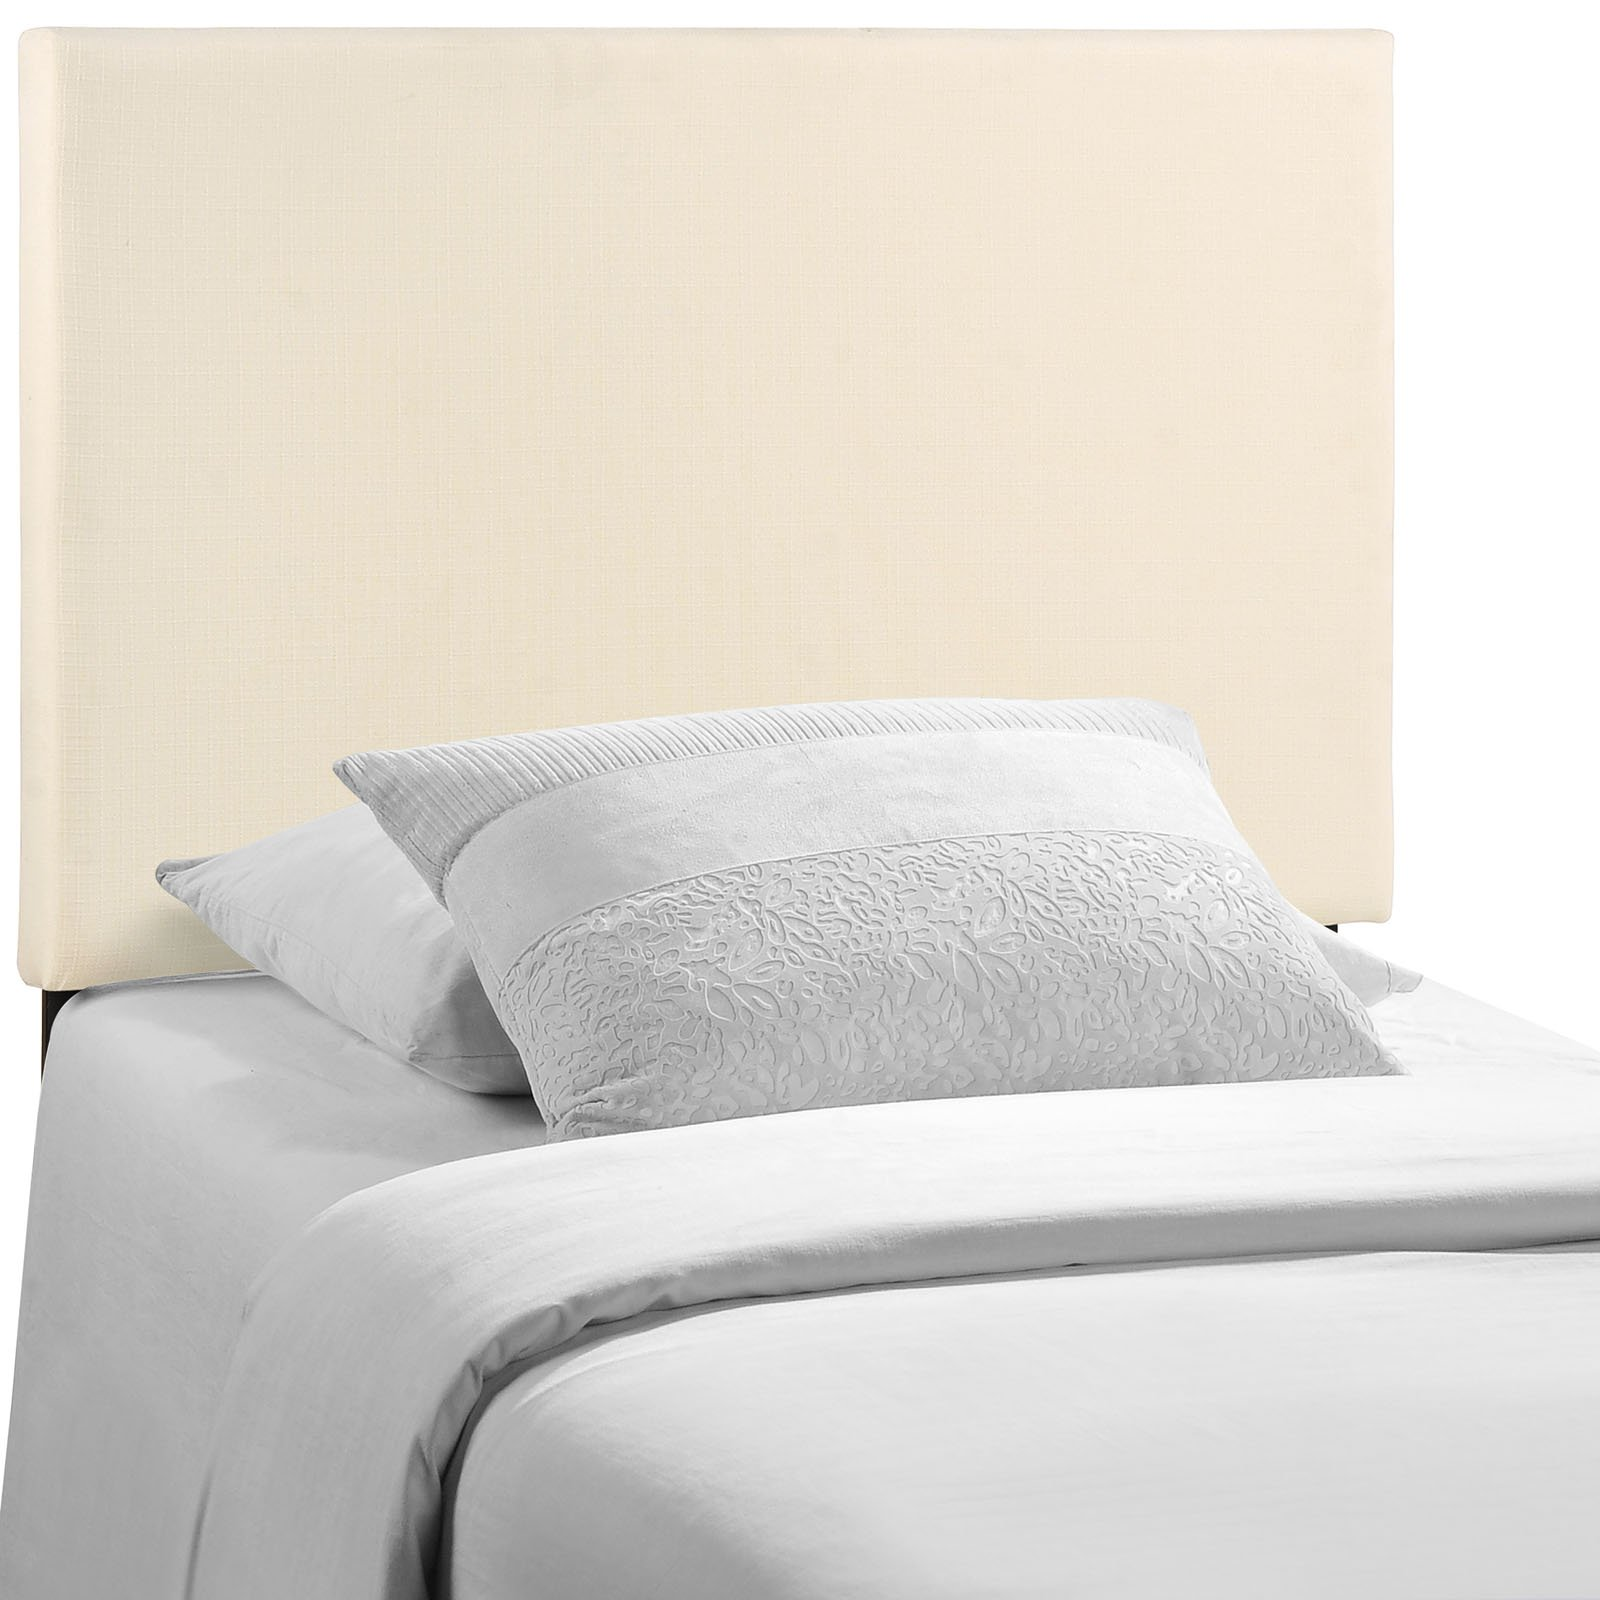 Modway Region Linen Fabric Upholstered Twin Headboard in Ivory by Modway